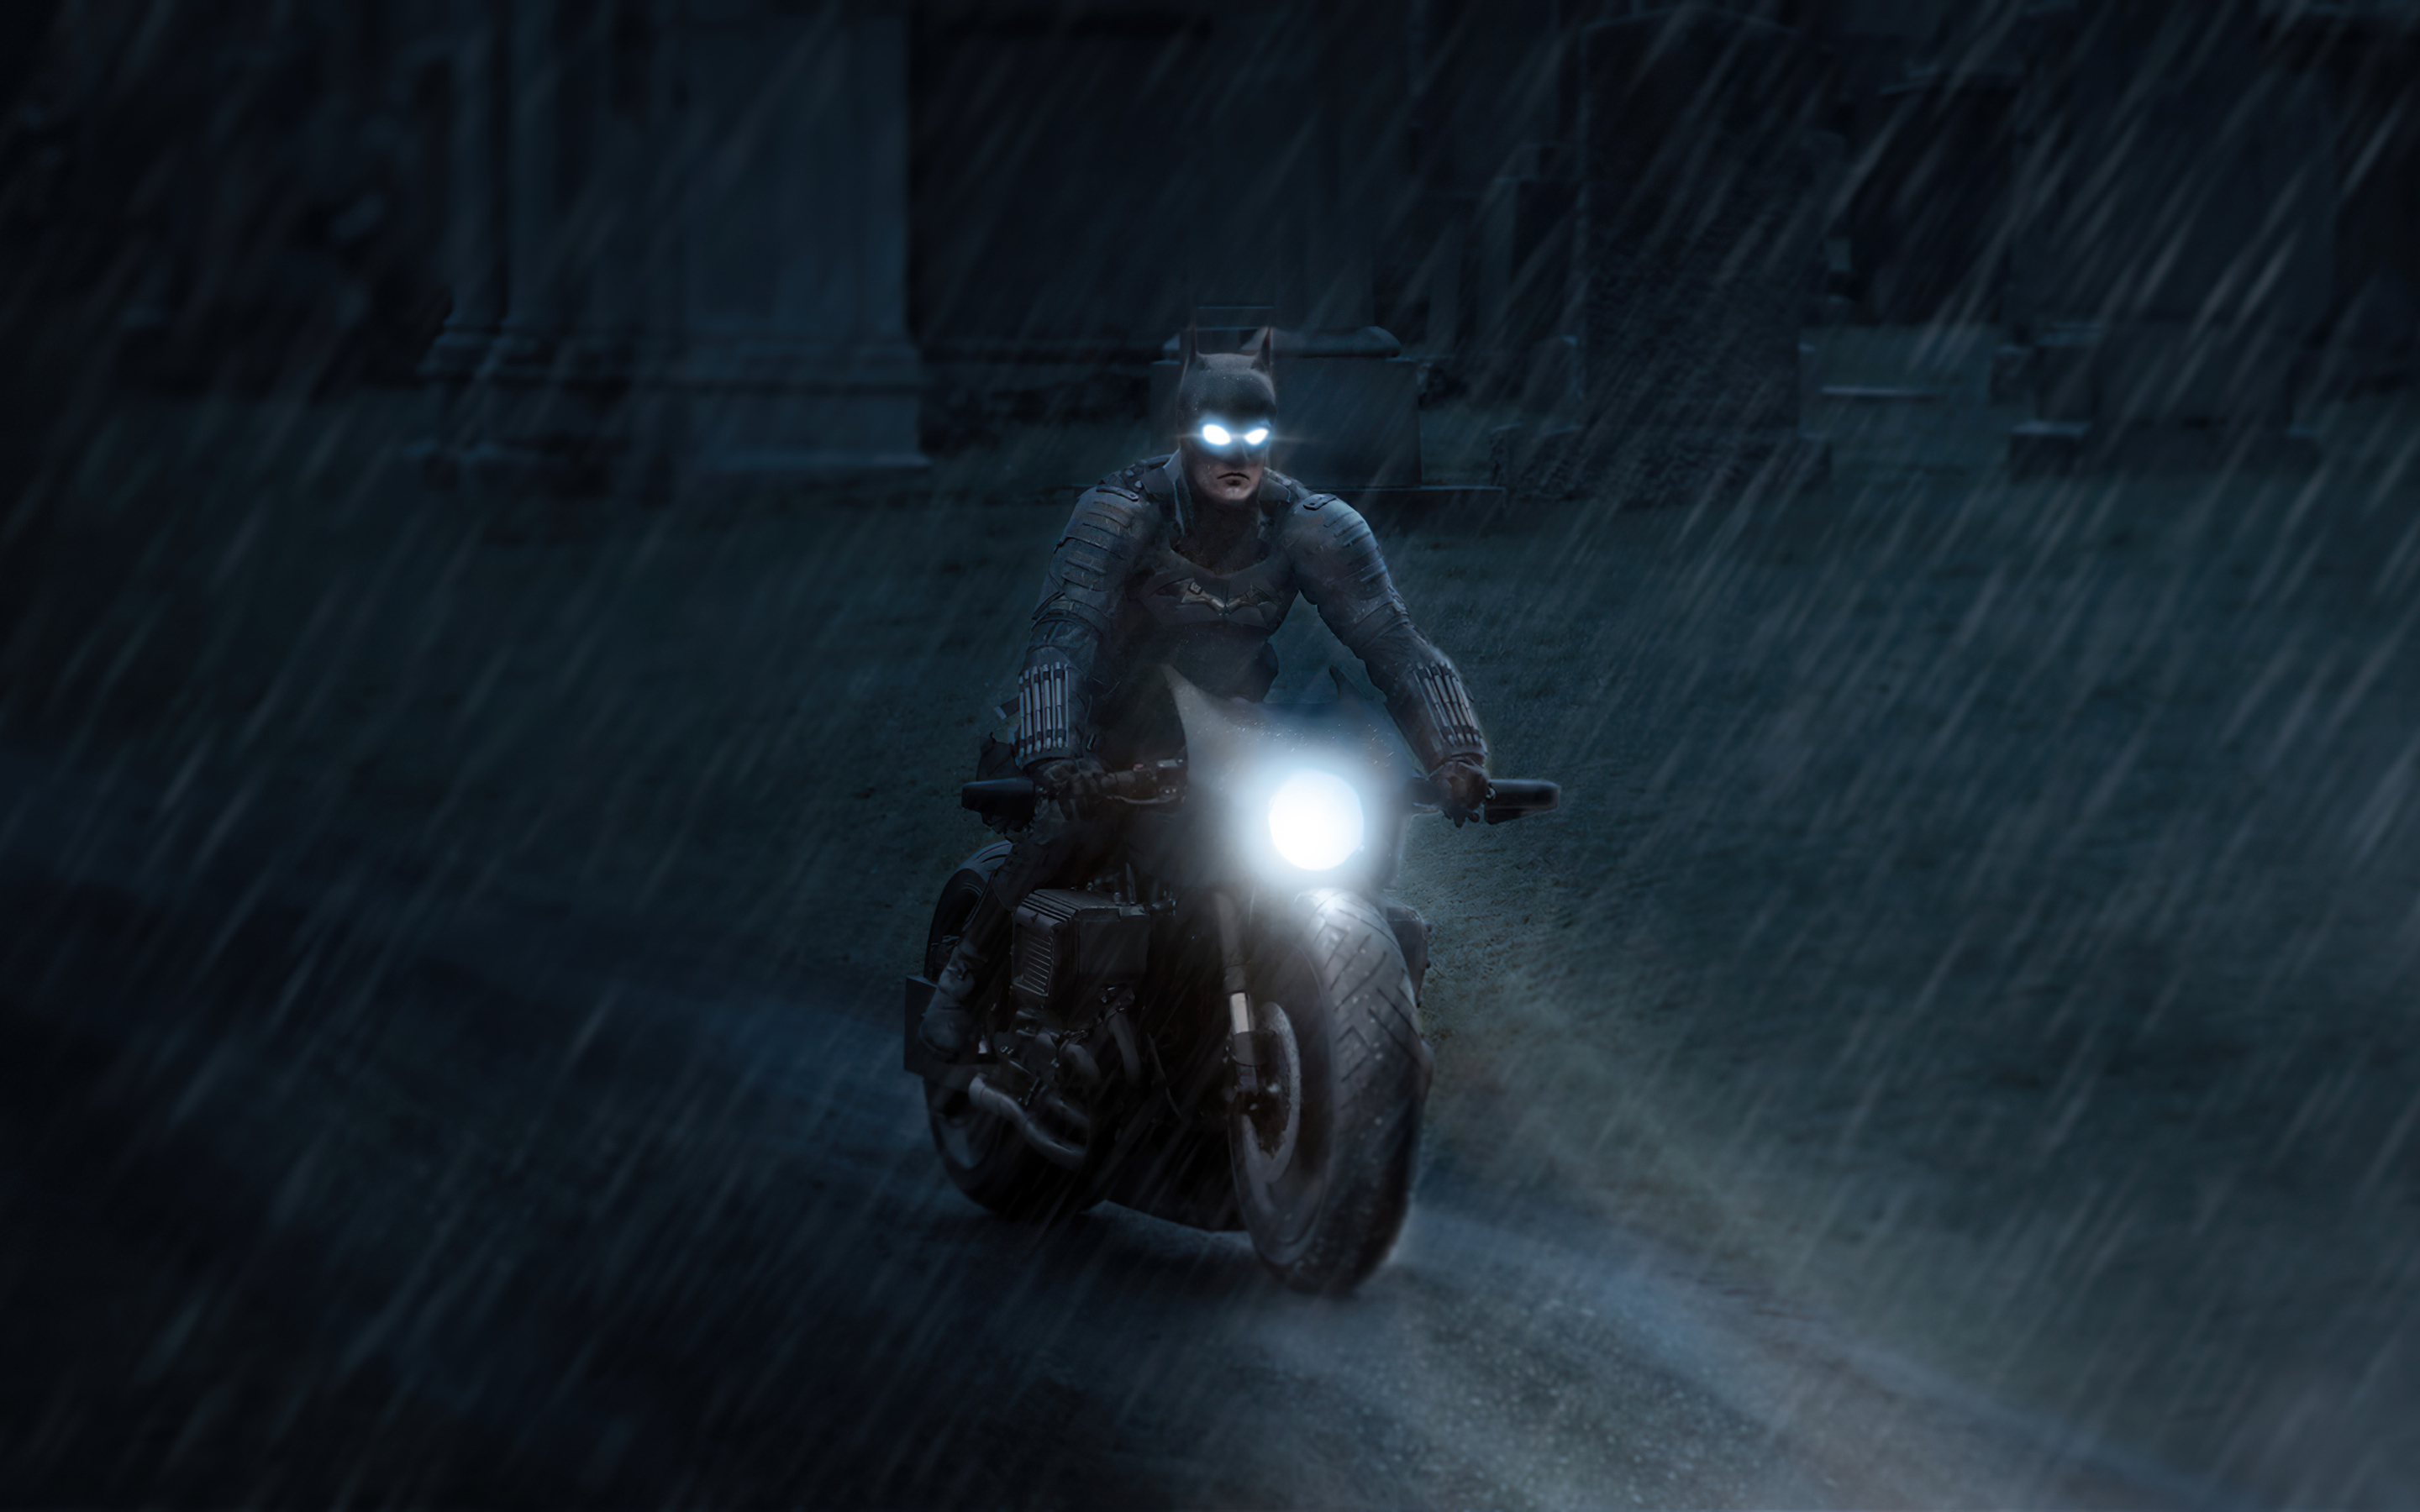 batman-robert-pattinson-on-bike-4k-qr.jpg